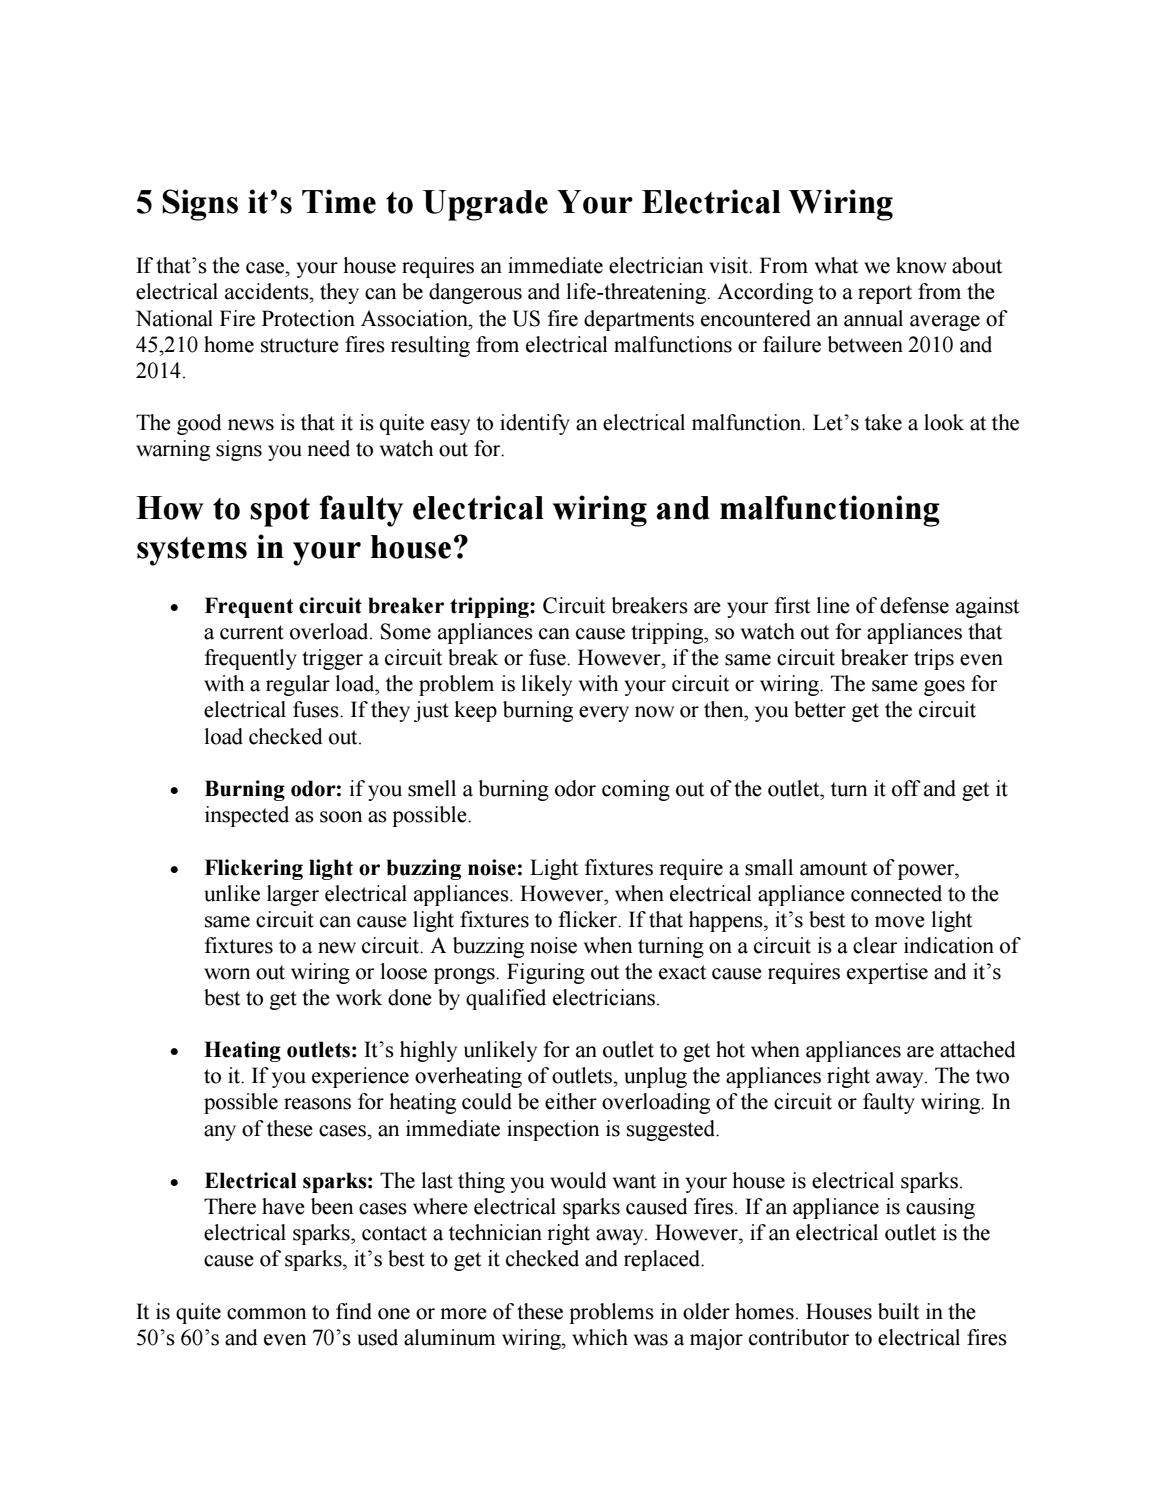 5 signs it's time to upgrade your electrical wiring by ... on